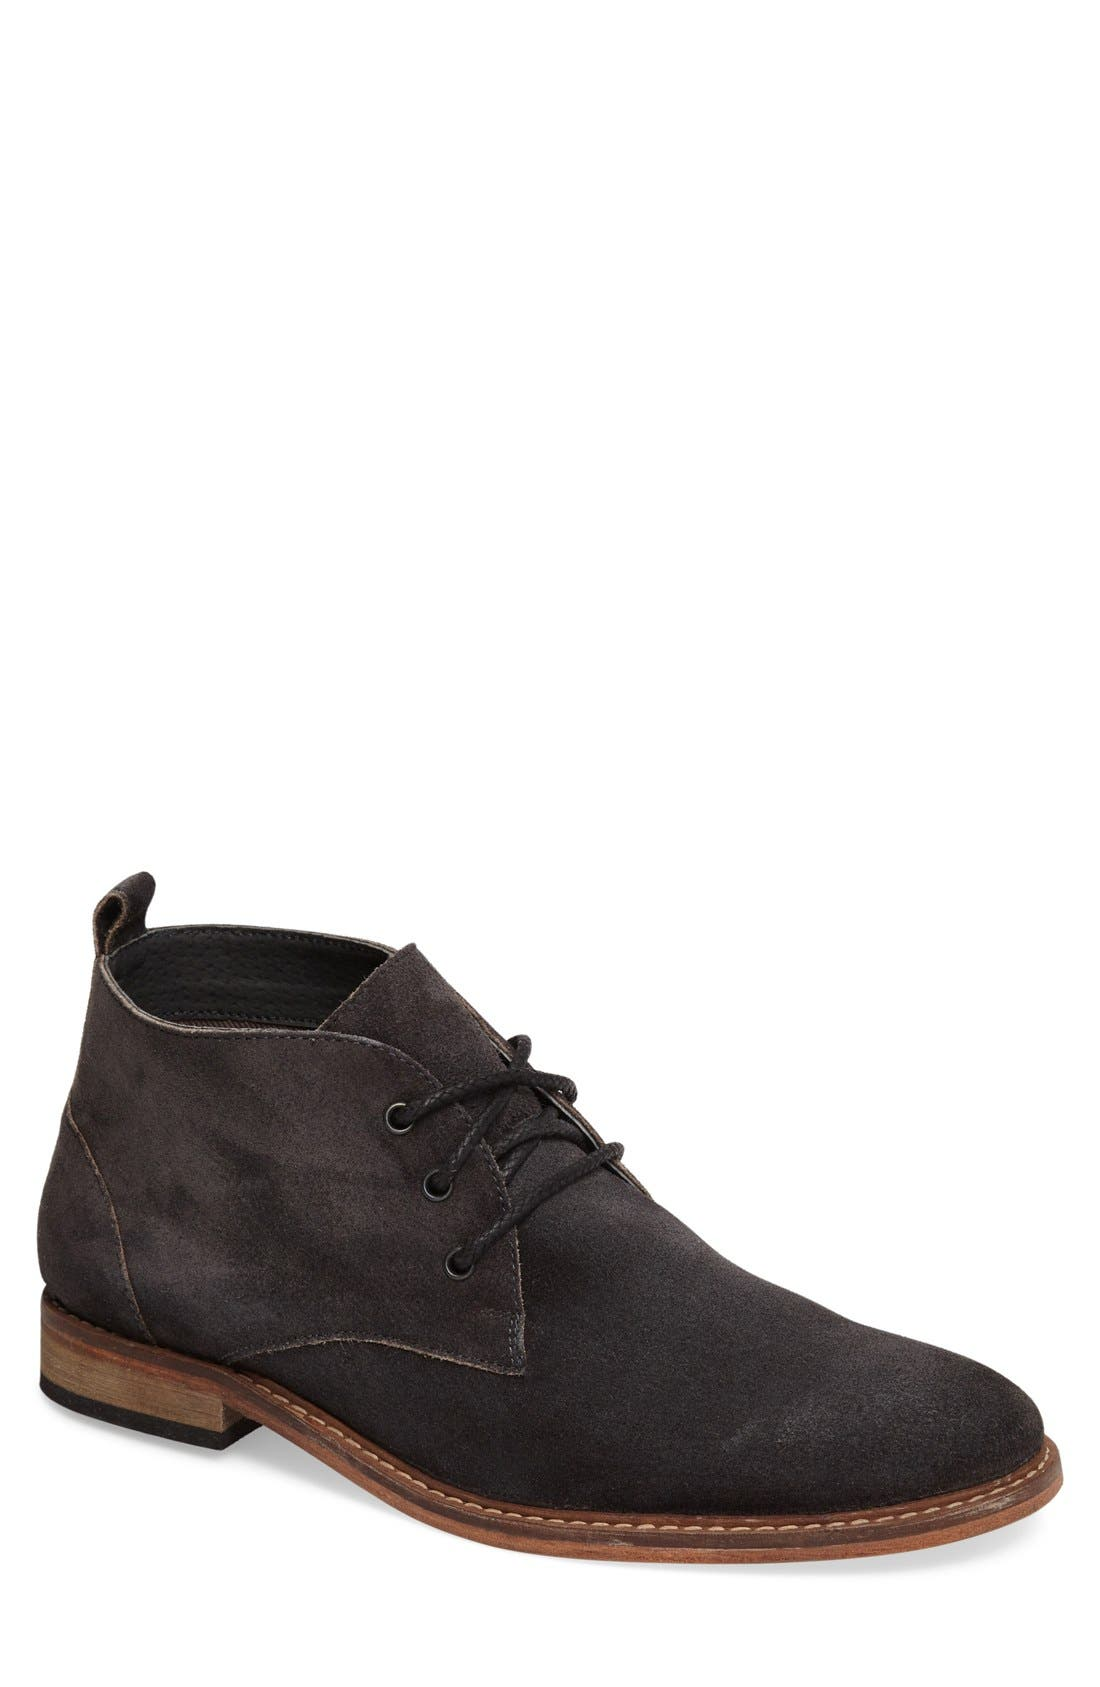 Prove Out Chukka Boot,                         Main,                         color, 020